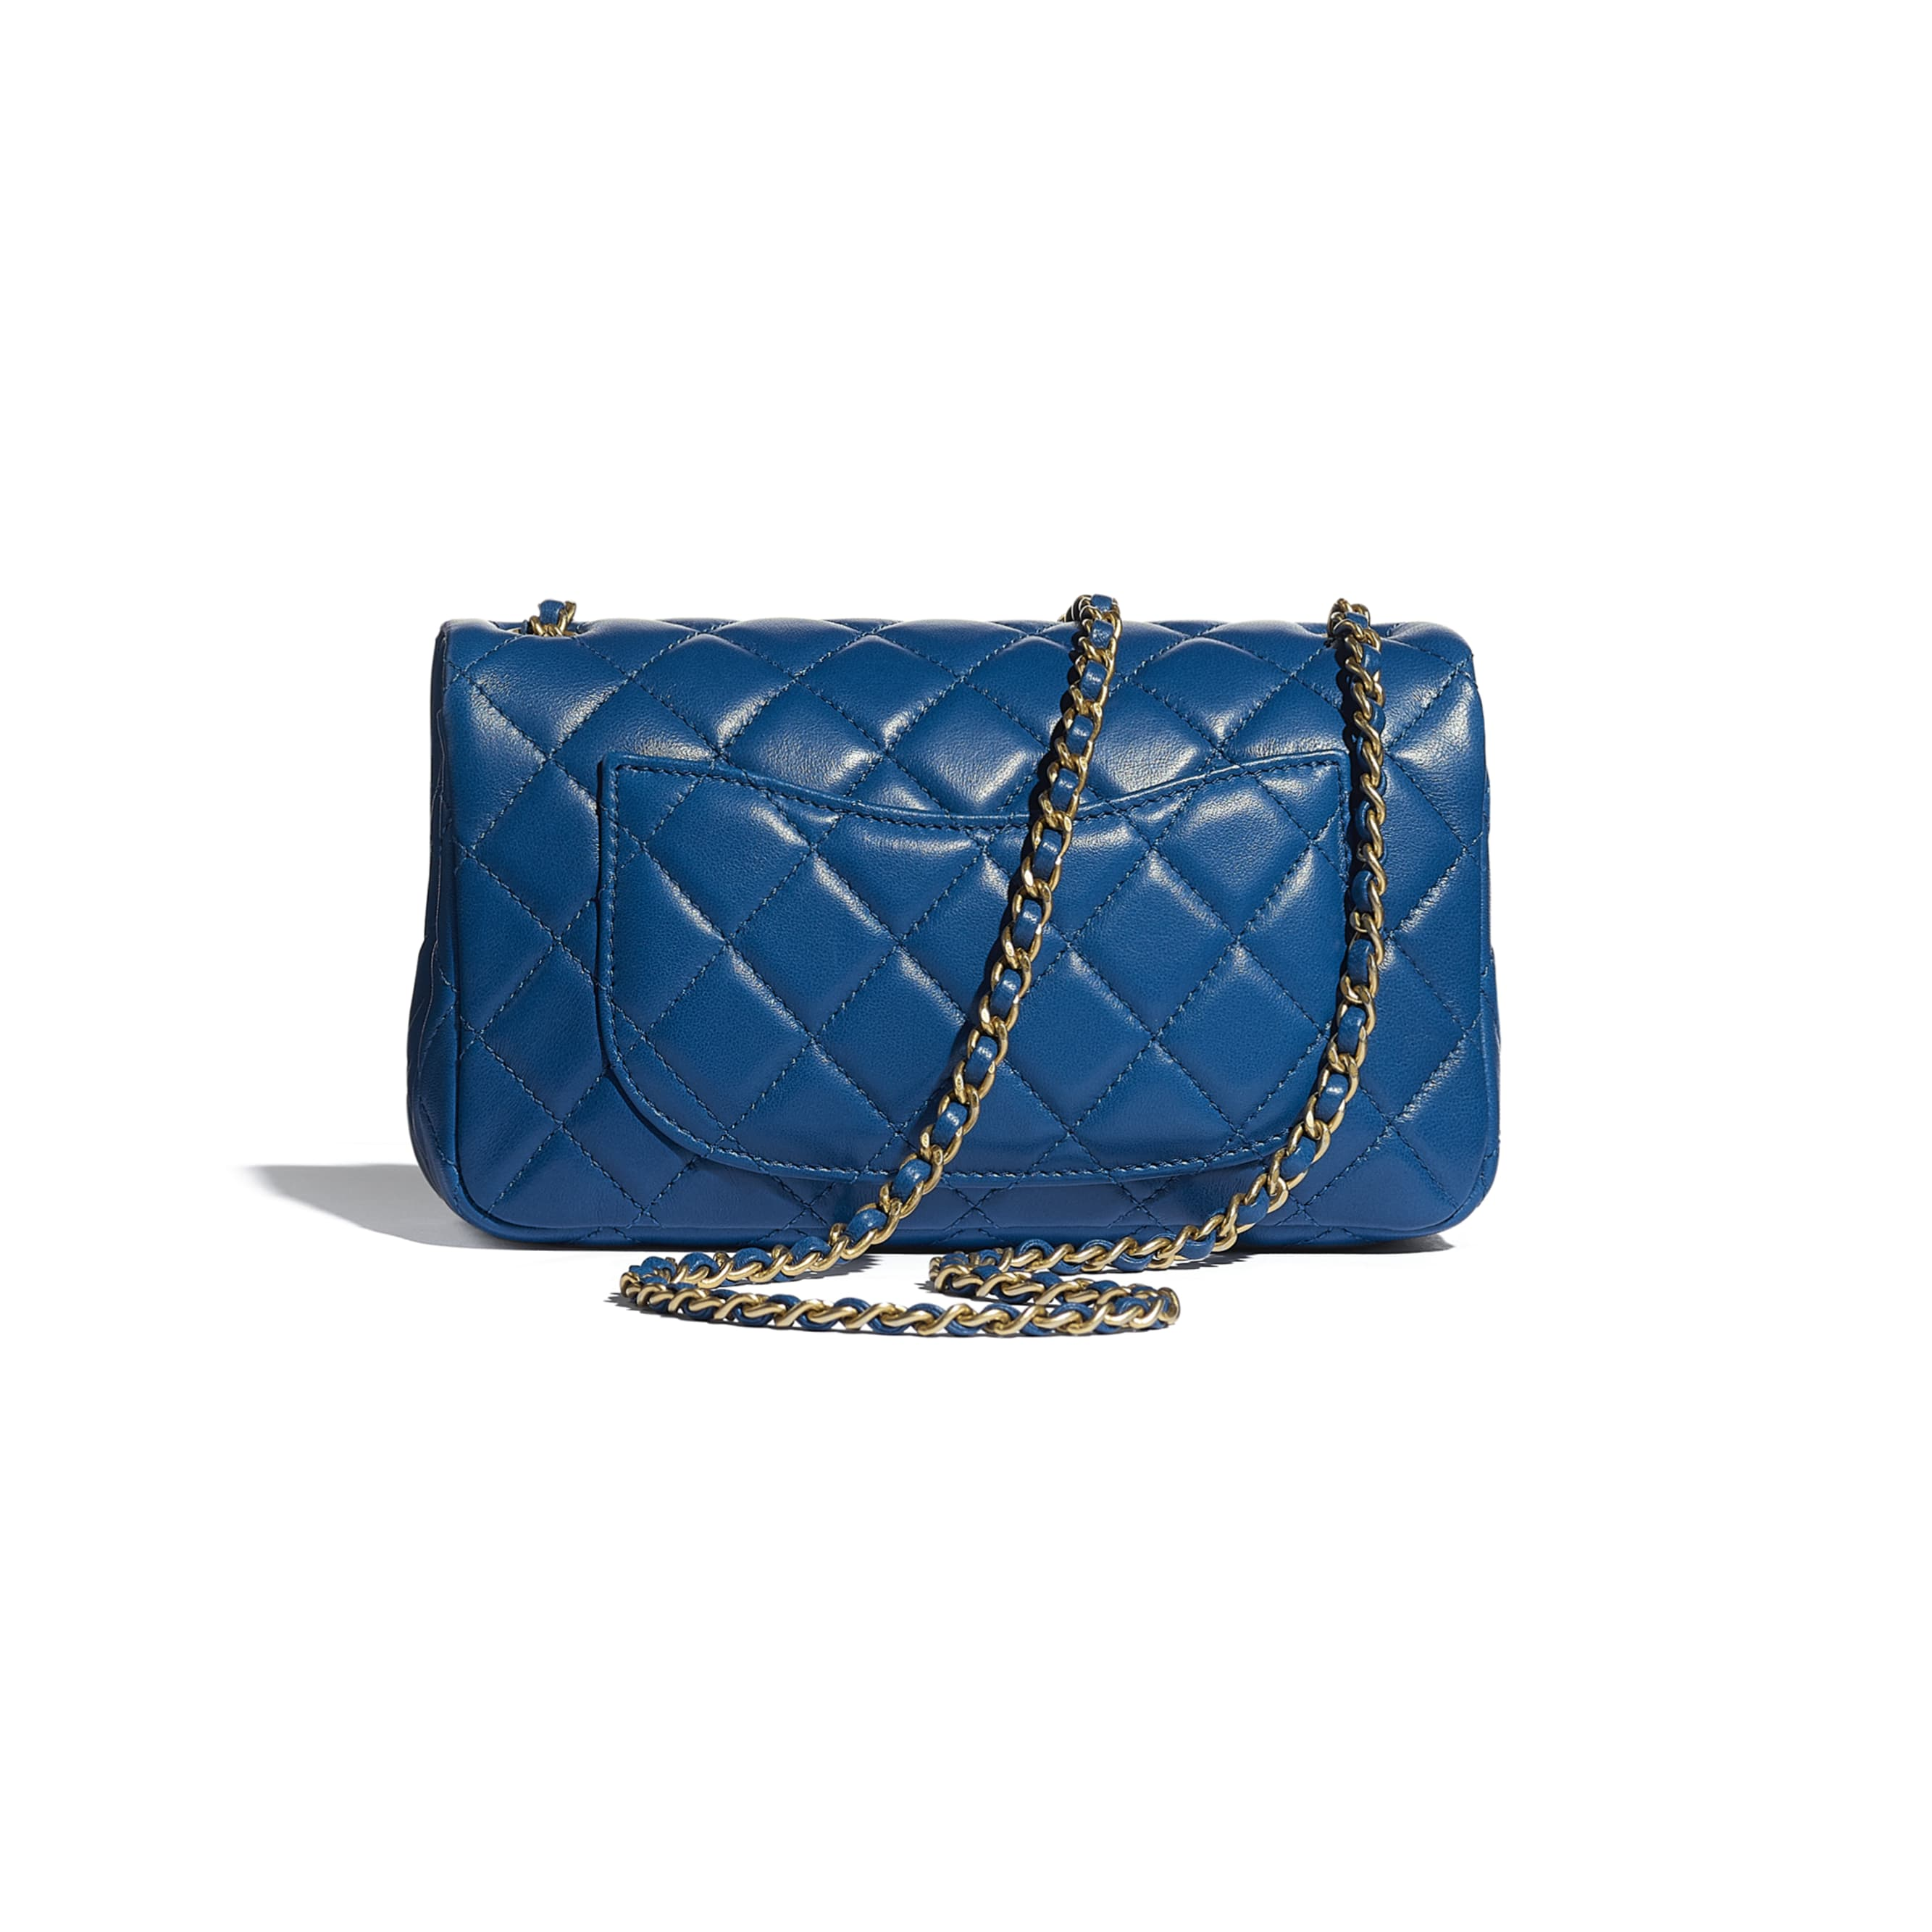 Flap Bag - Blue - Lambskin - CHANEL - Alternative view - see standard sized version